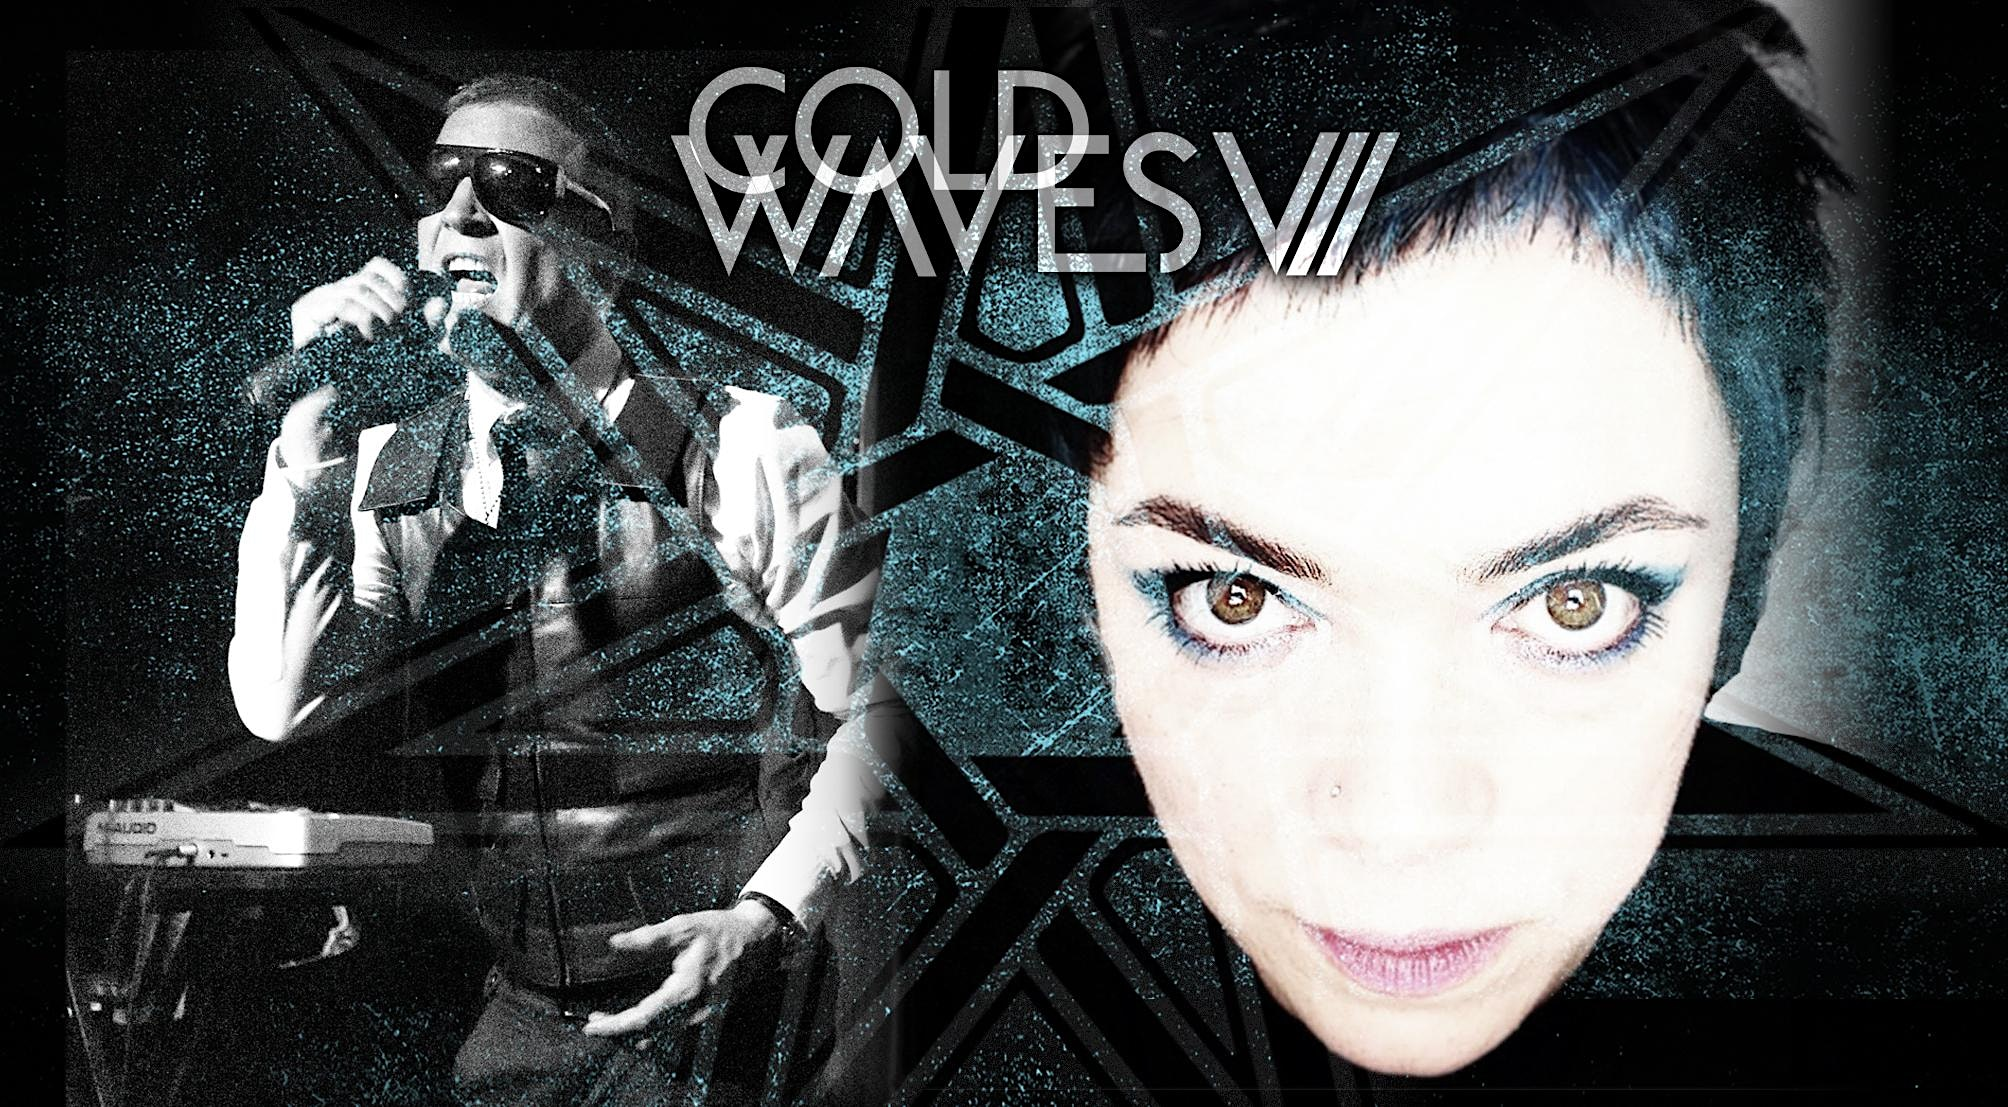 Cold Waves Official Kick-Off Show featuring Crash Course In Science / Ruby (Lesley Rankine) / DJ Andi Harriman (Synthicide)